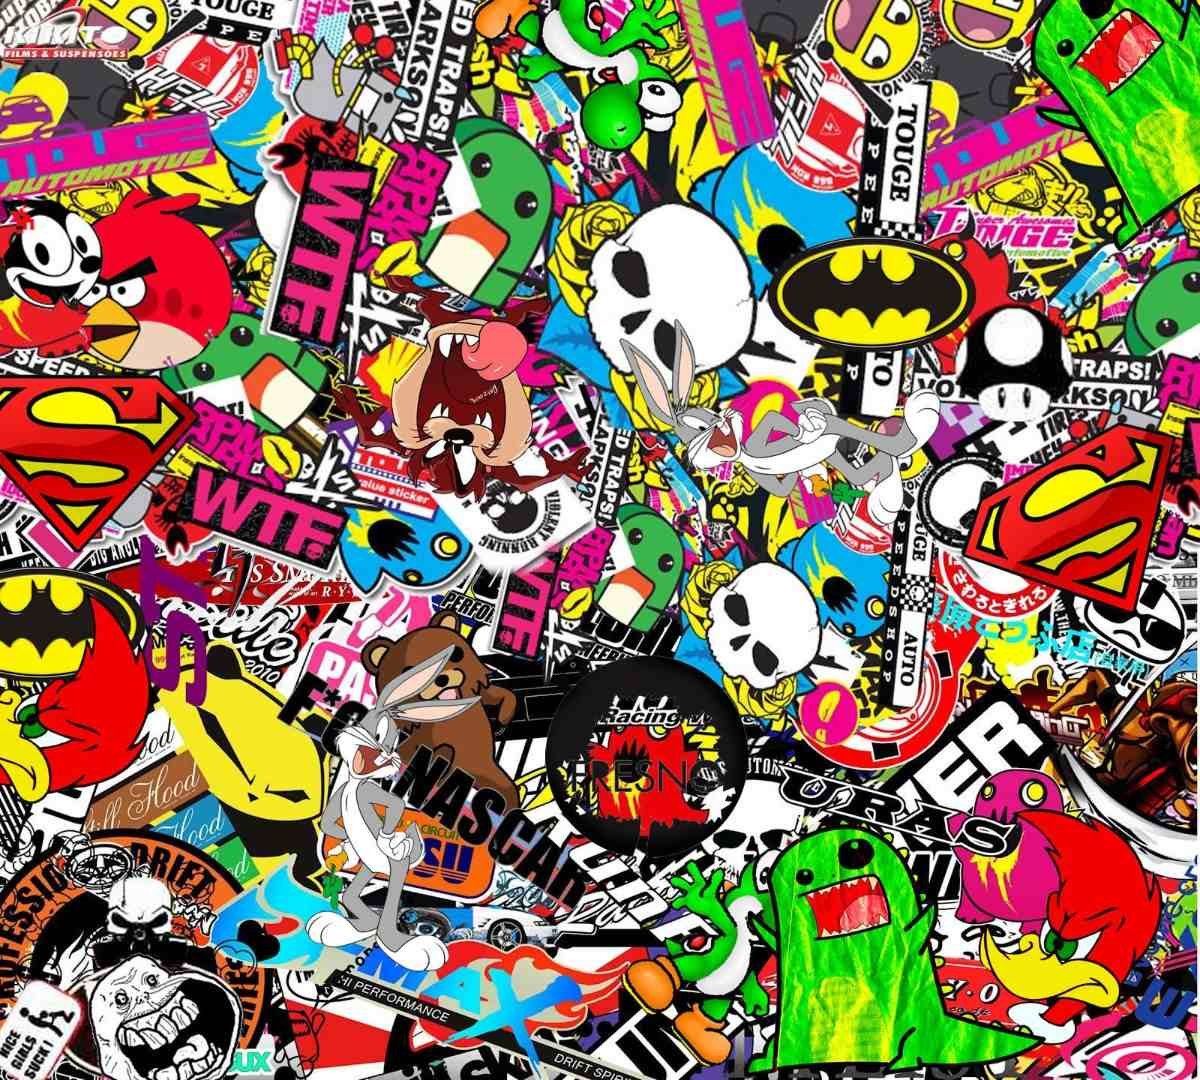 Wallpaper Decal: Stickerbomb Wallpapers